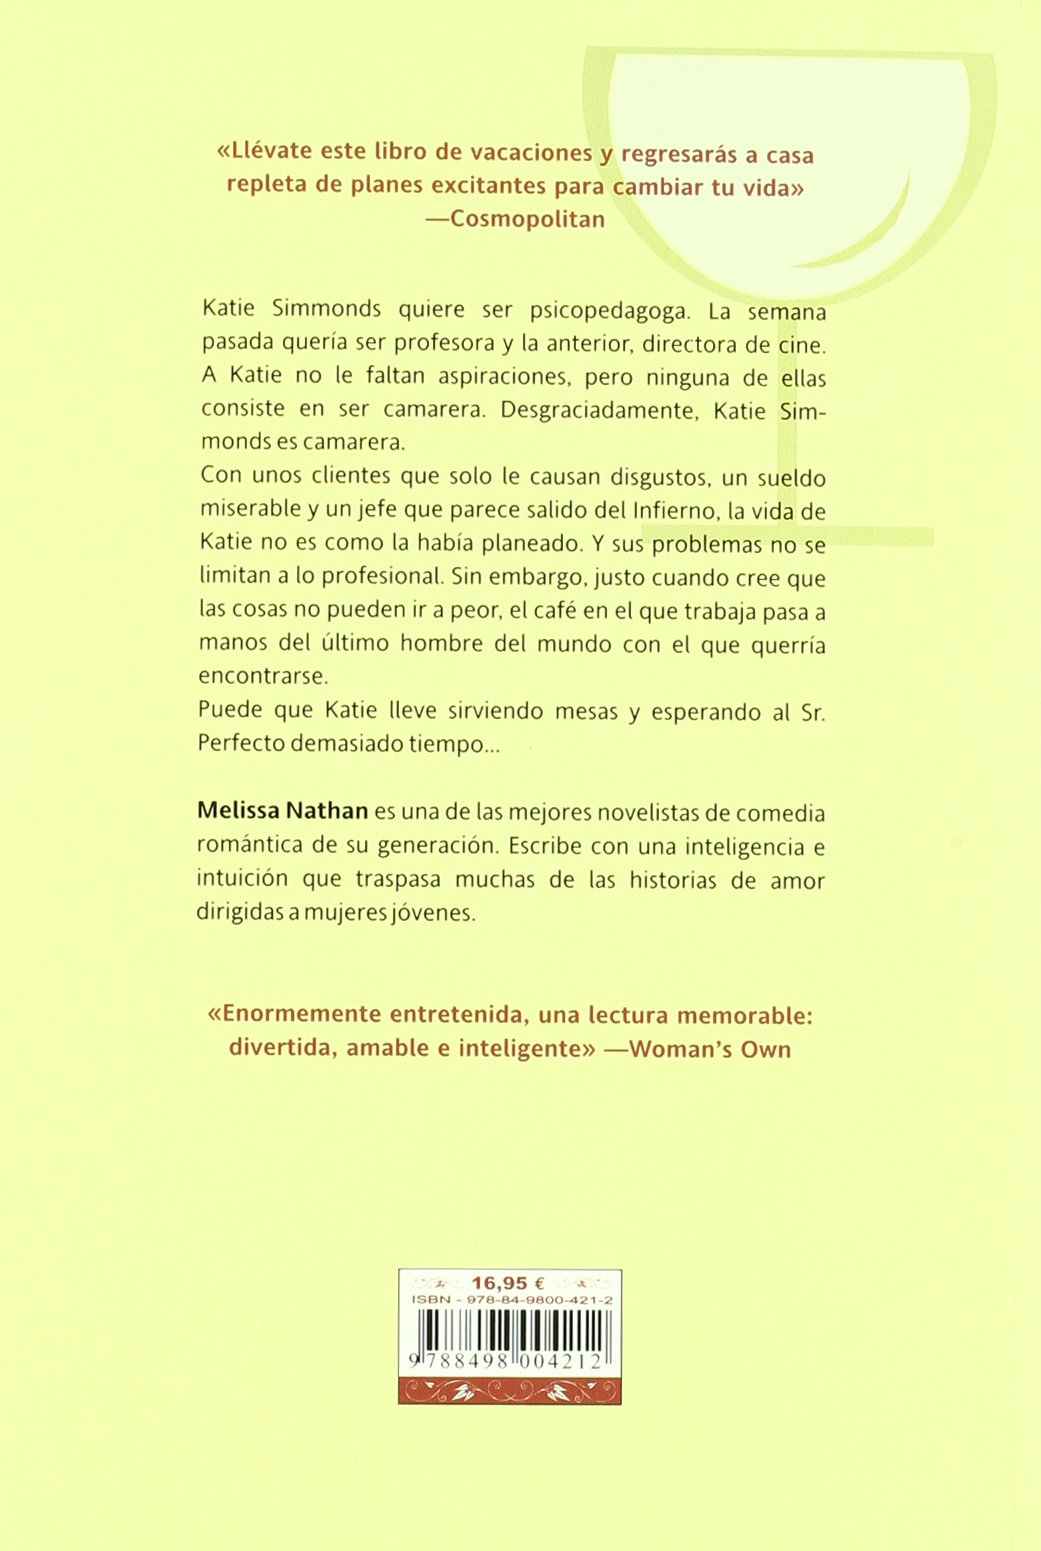 La camarera / The Waitress (Spanish Edition): Melissa Nathan, Beatriz Ruiz Jara: 9788498004212: Amazon.com: Books